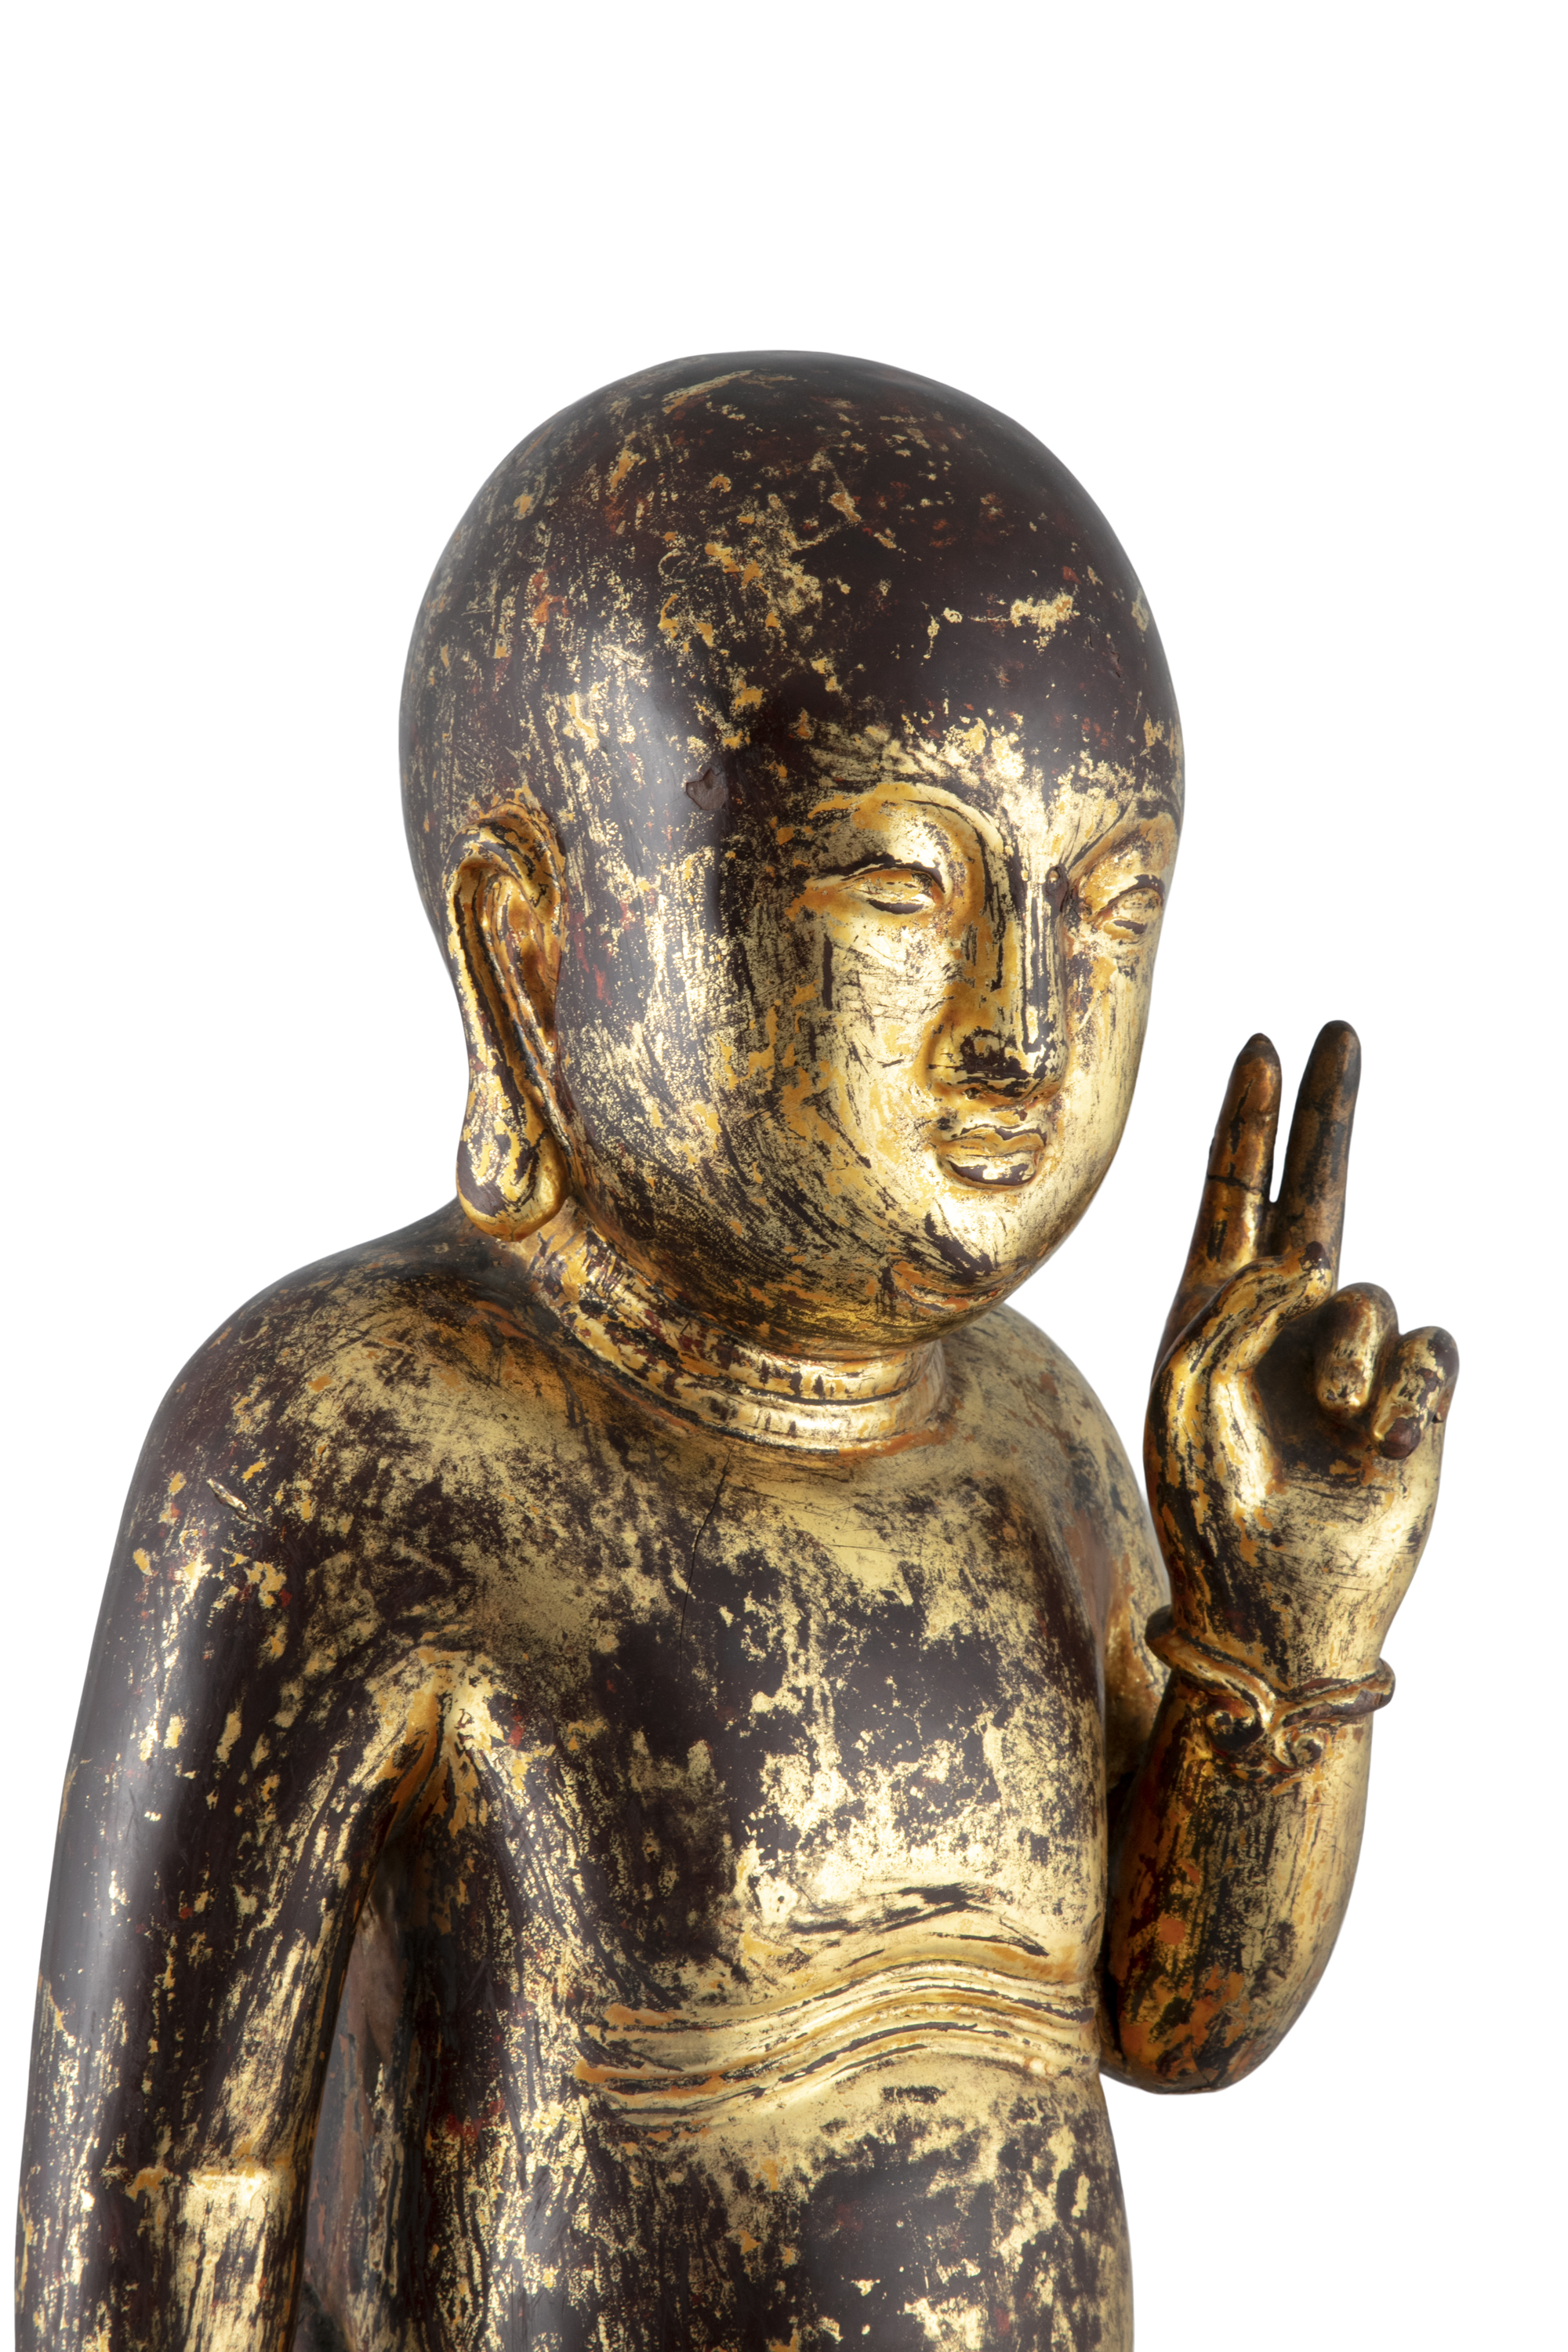 A LARGE GILT-LACQUERED WOODEN SCULPTURE OF THE STANDING INFANT BUDDHA China, Qing Dynasty (or - Image 2 of 20